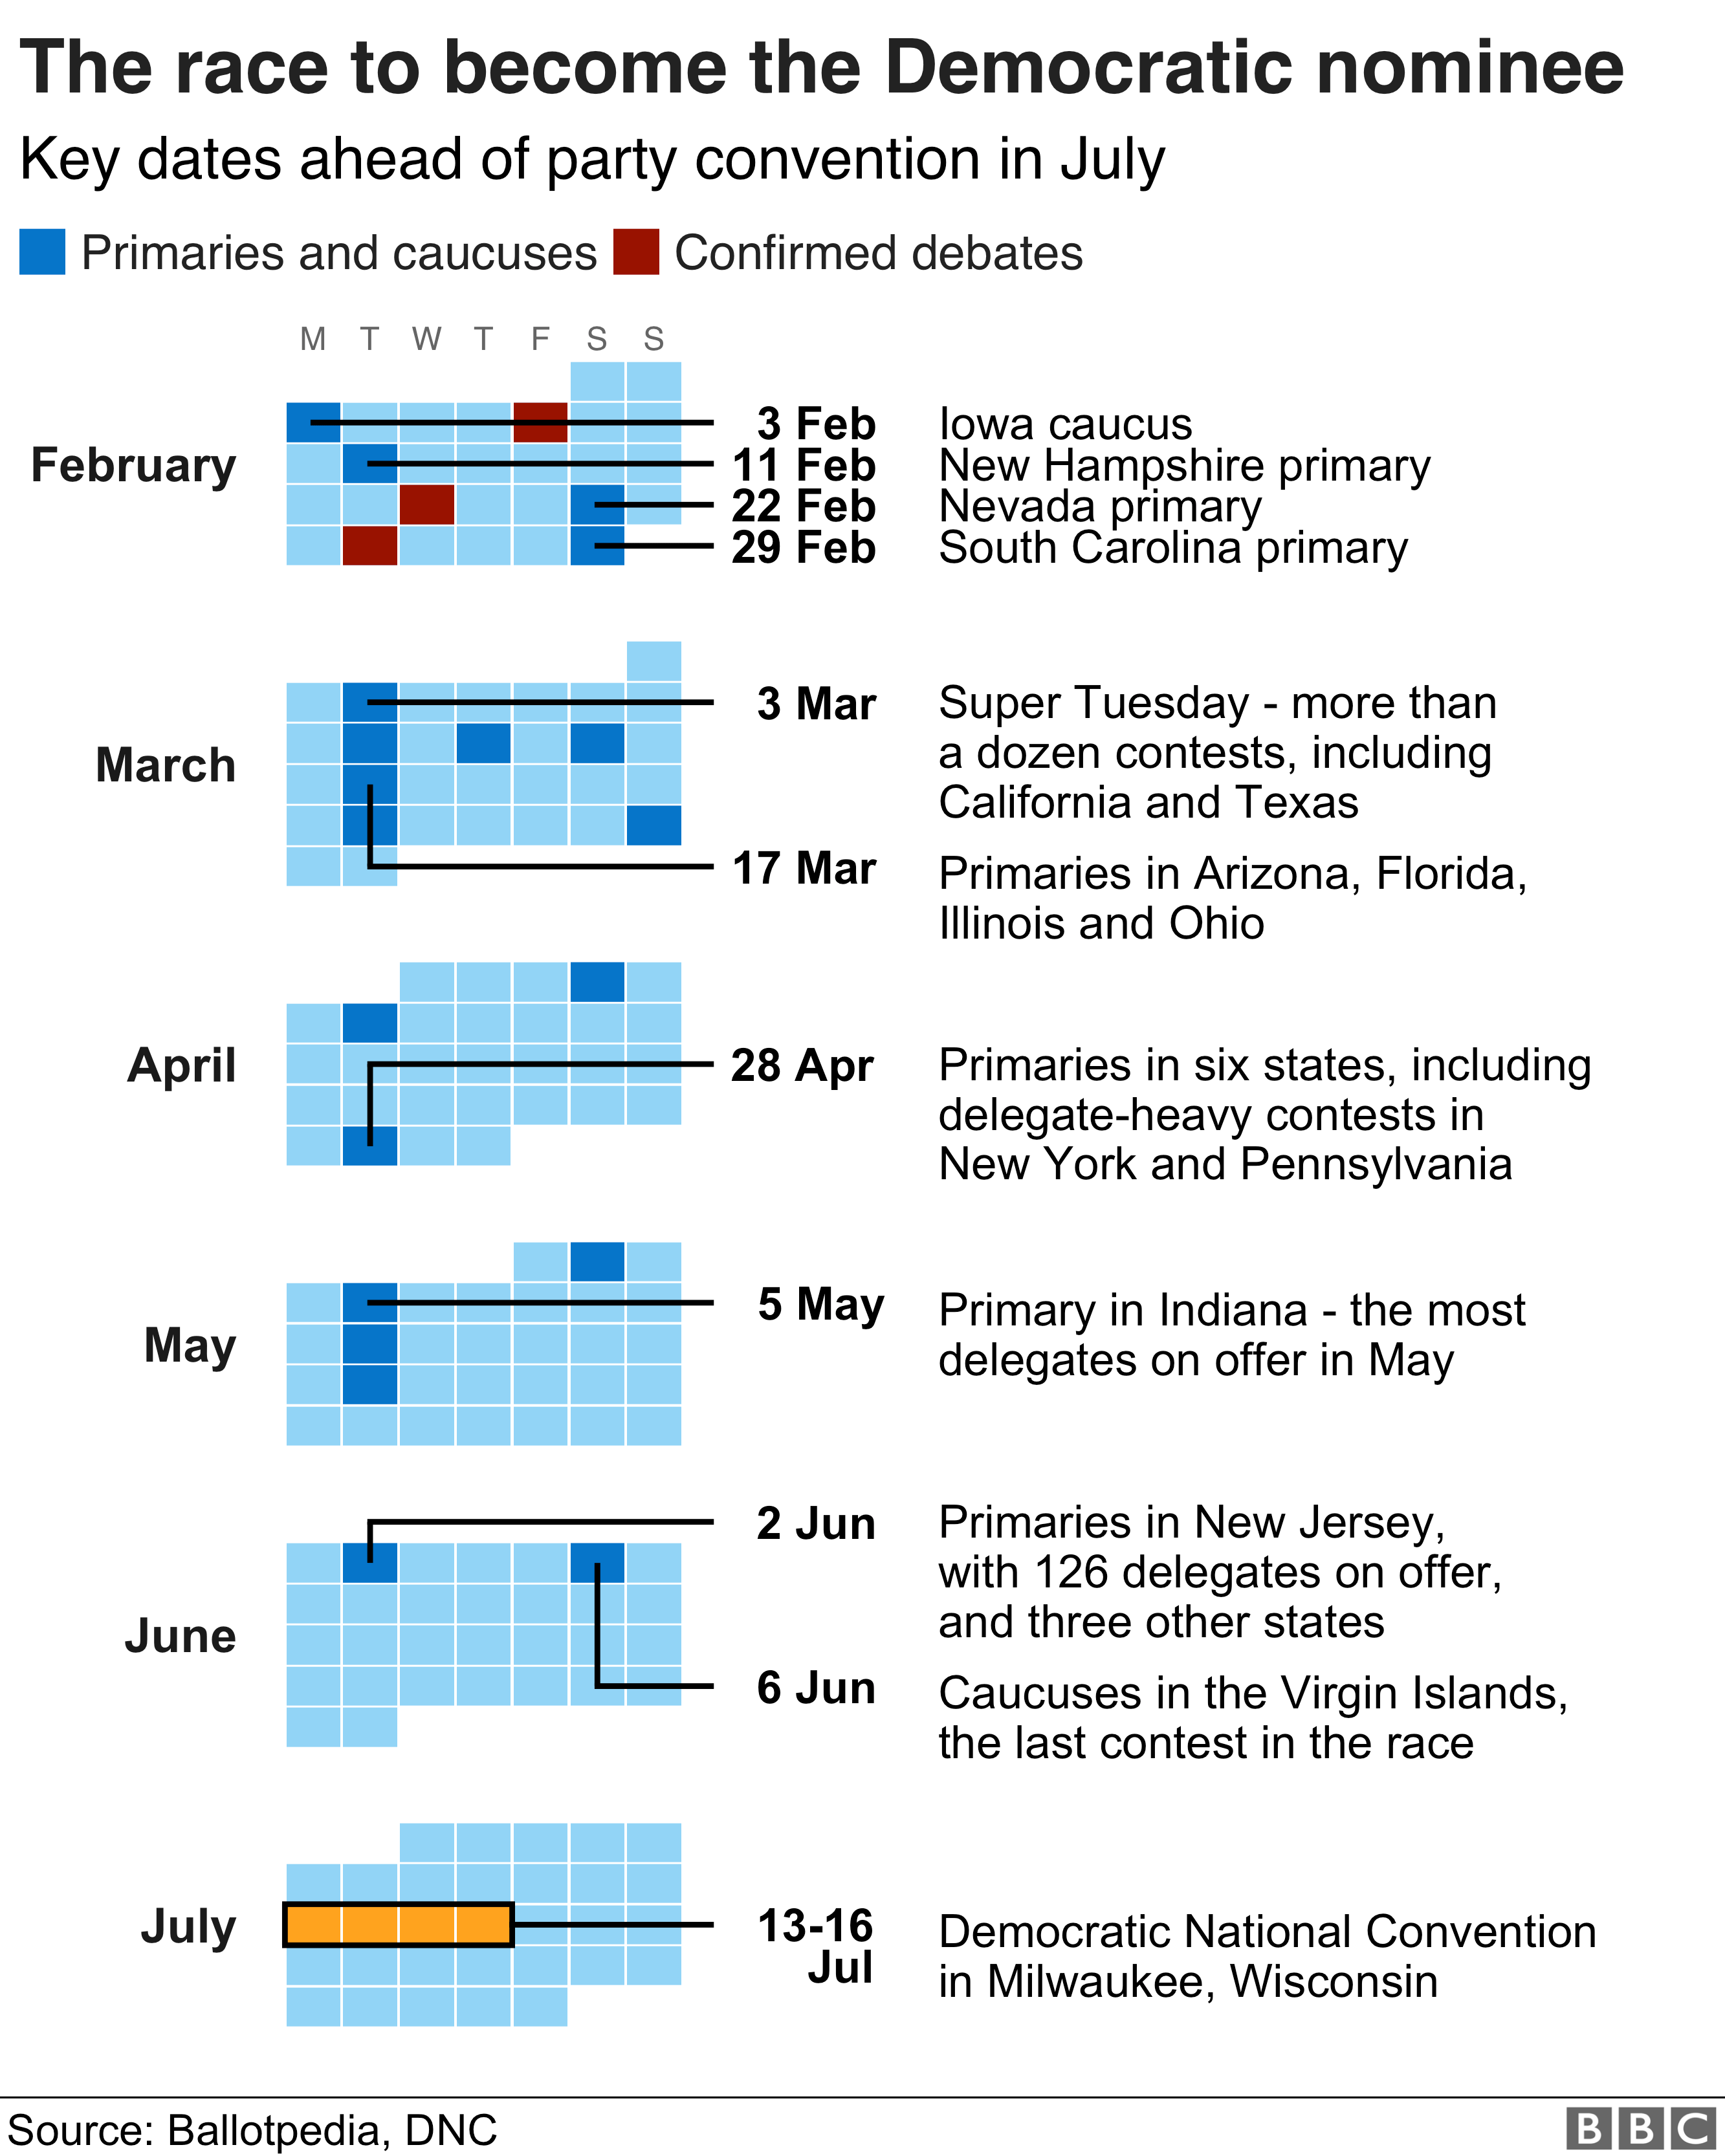 Calendar graphic showing some of the key dates in the build up to the Democratic National Convention in July